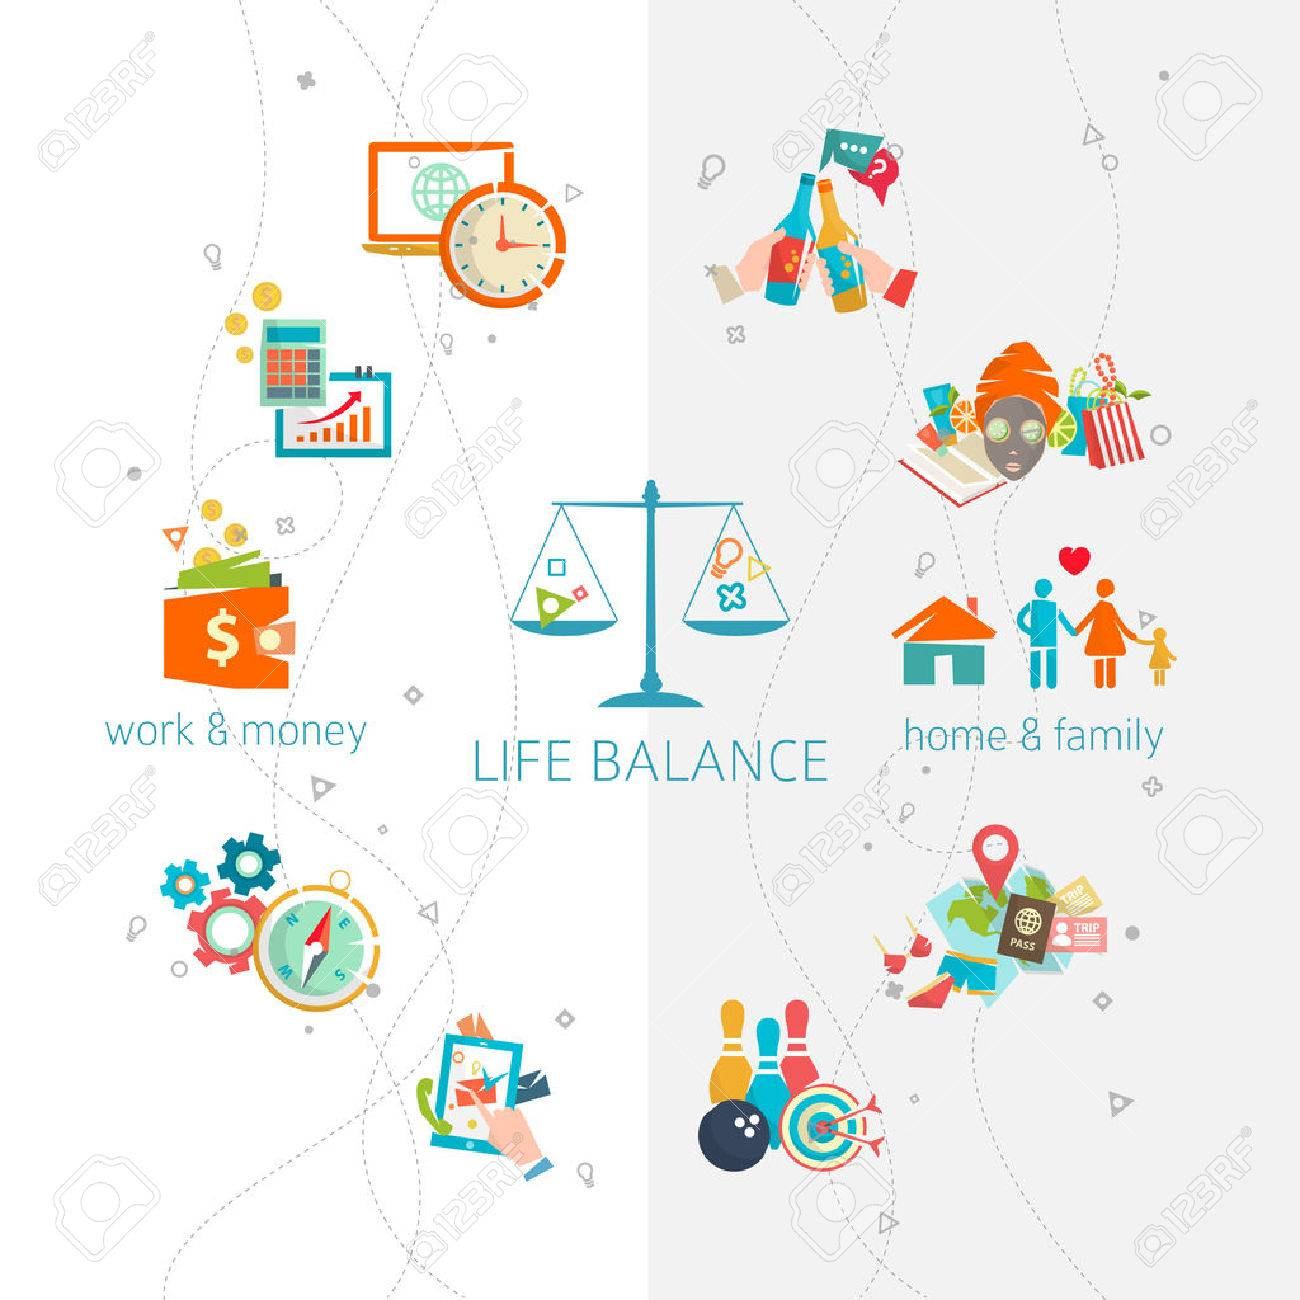 Good Concept Of Work And Life Balance / Dividing Of Human Energy Between  Important Life Spheres /